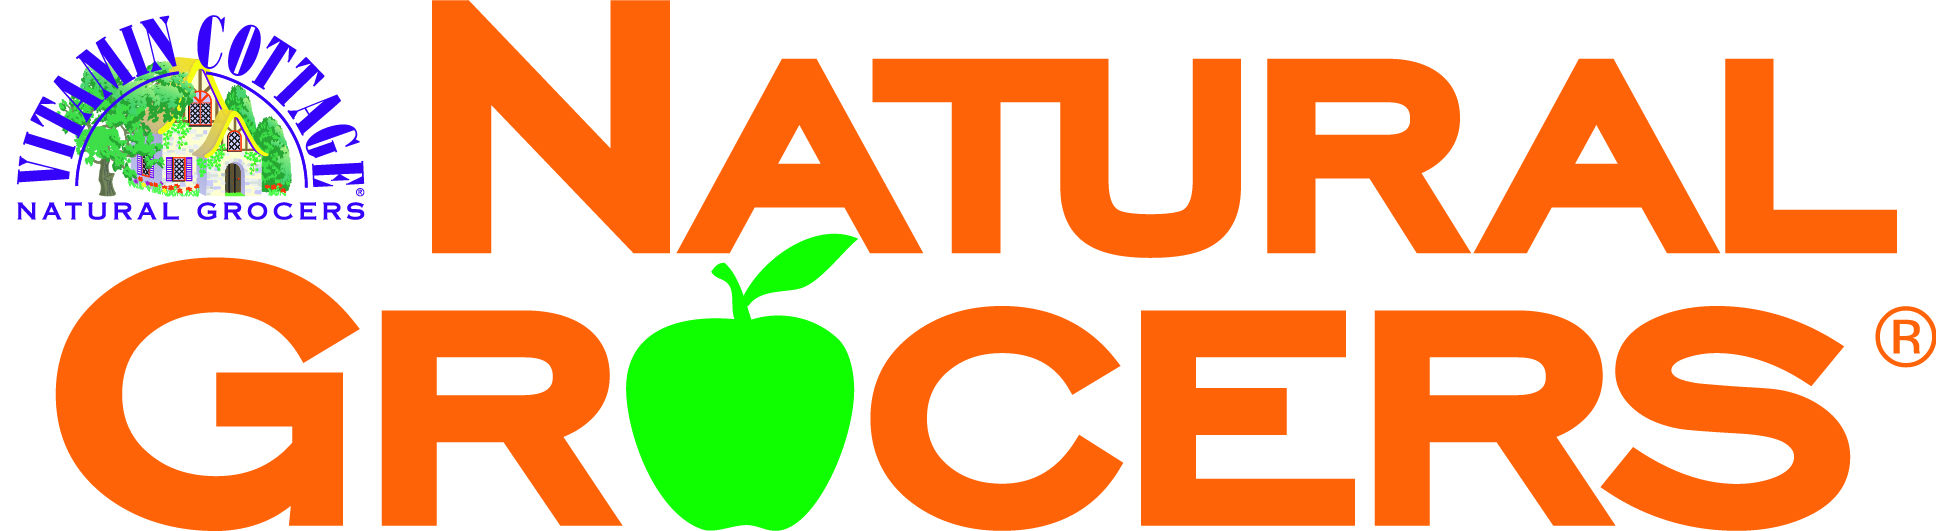 Vitamin Cottage Natural Grocers Logo